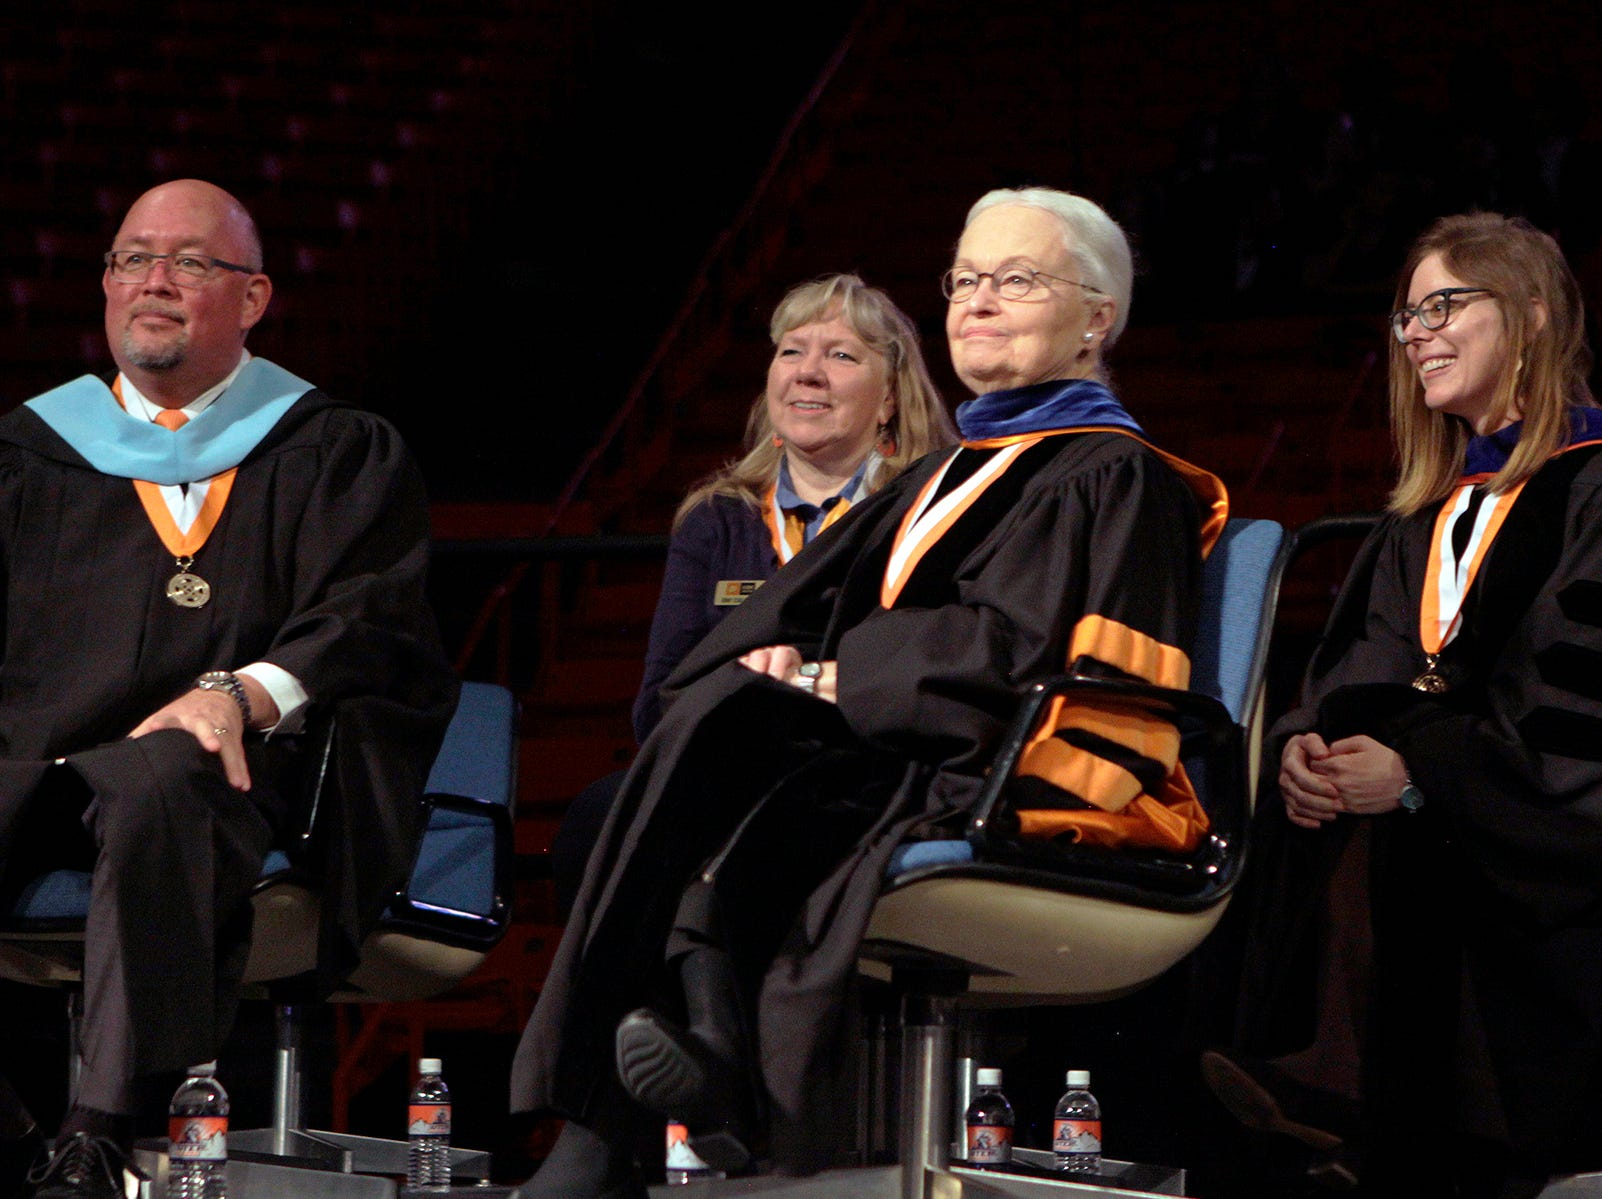 UTEP President Diana Natalicio smiles as more than 2,500 students received their degrees from the University of Texas at El Paso at Saturday's winter commencement ceremonies.